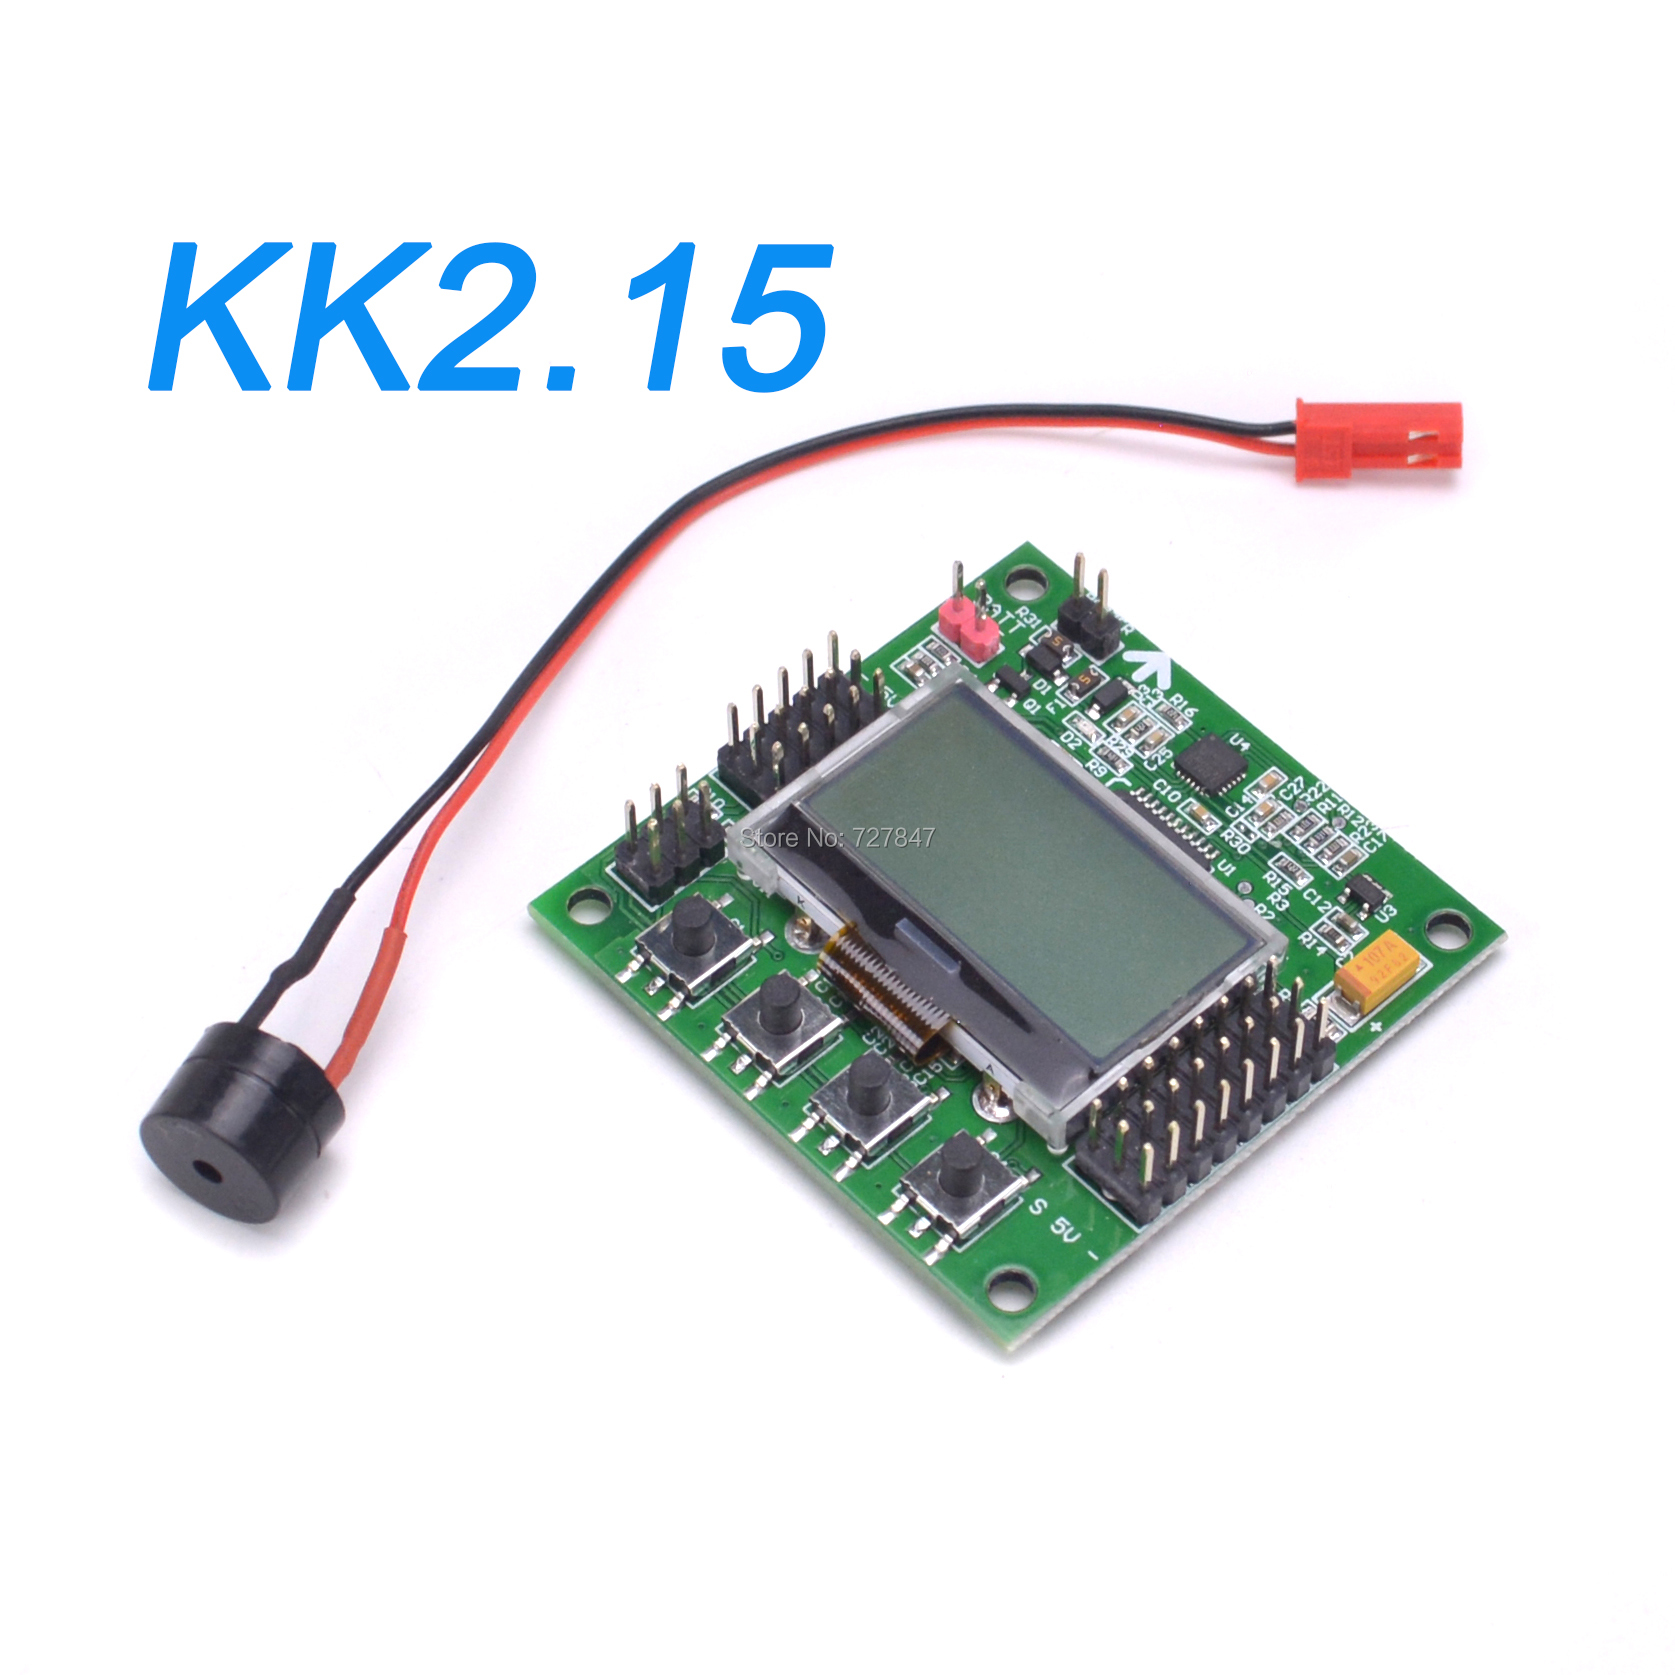 medium resolution of kk 2 1 5 kk2 15 lcd multirotor flight control board kk2 1 5 for quadcopter kk2 6050mpu 644pa f450 f550 s500